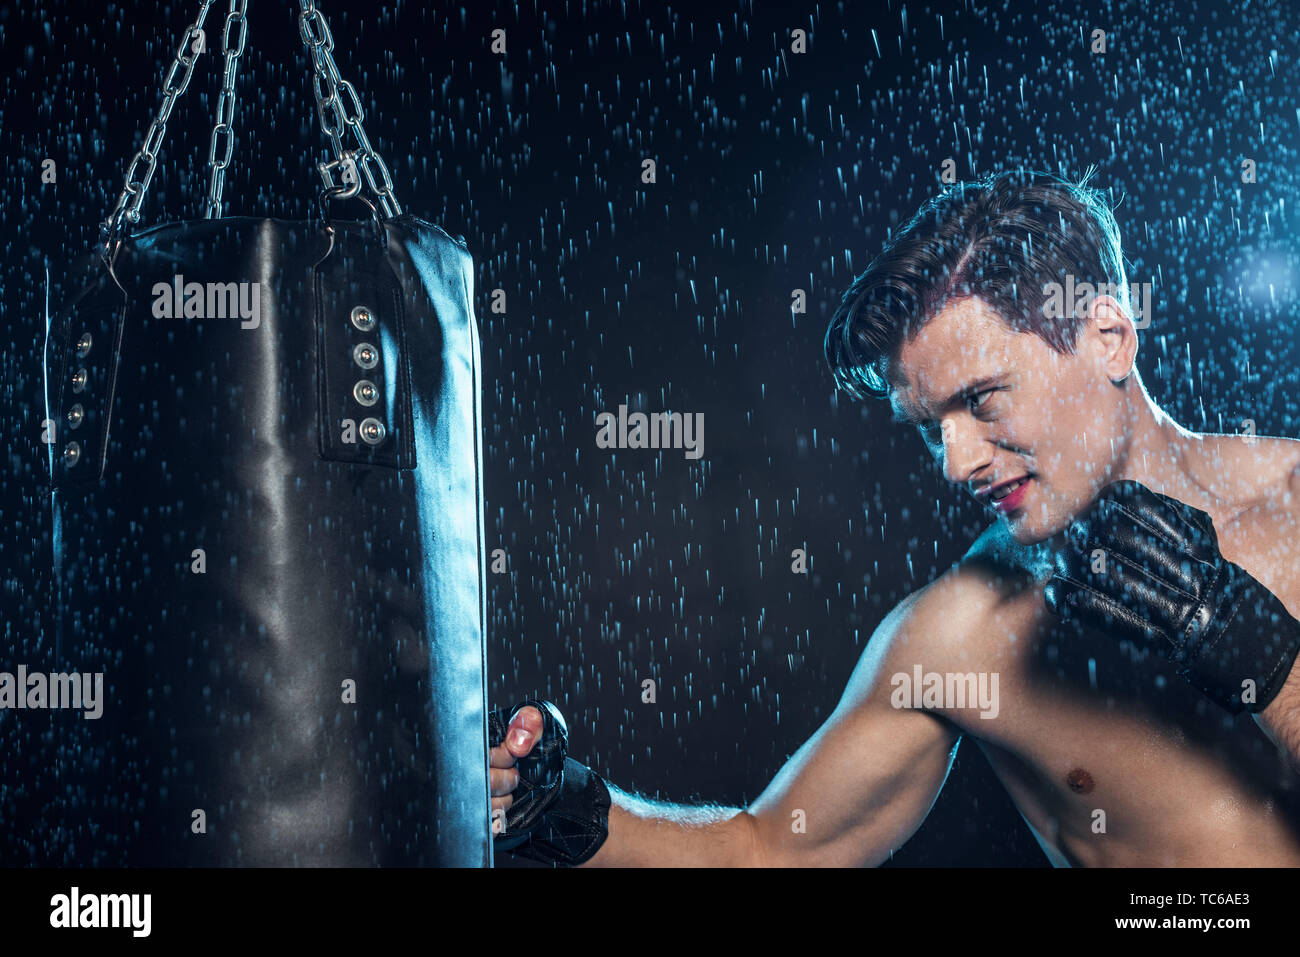 Boxer training with punching bag under water drops on black - Stock Image